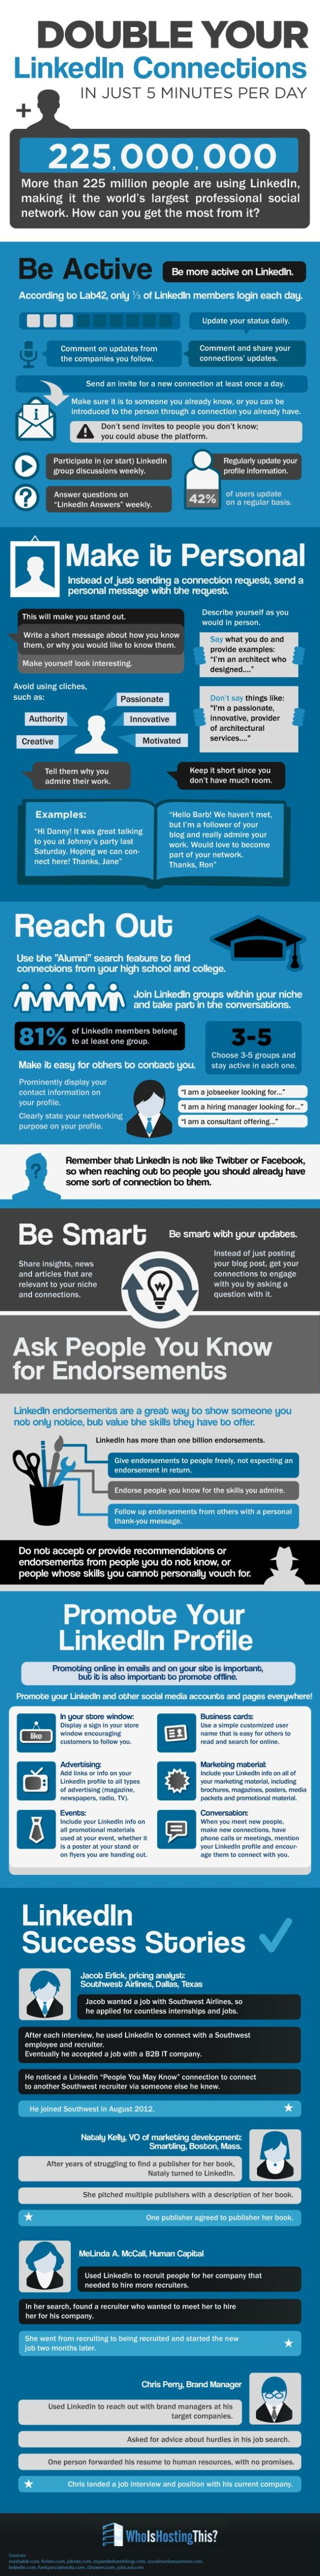 Double Your LinkedIn Connections - Fonte: www.whoishostingthis.com